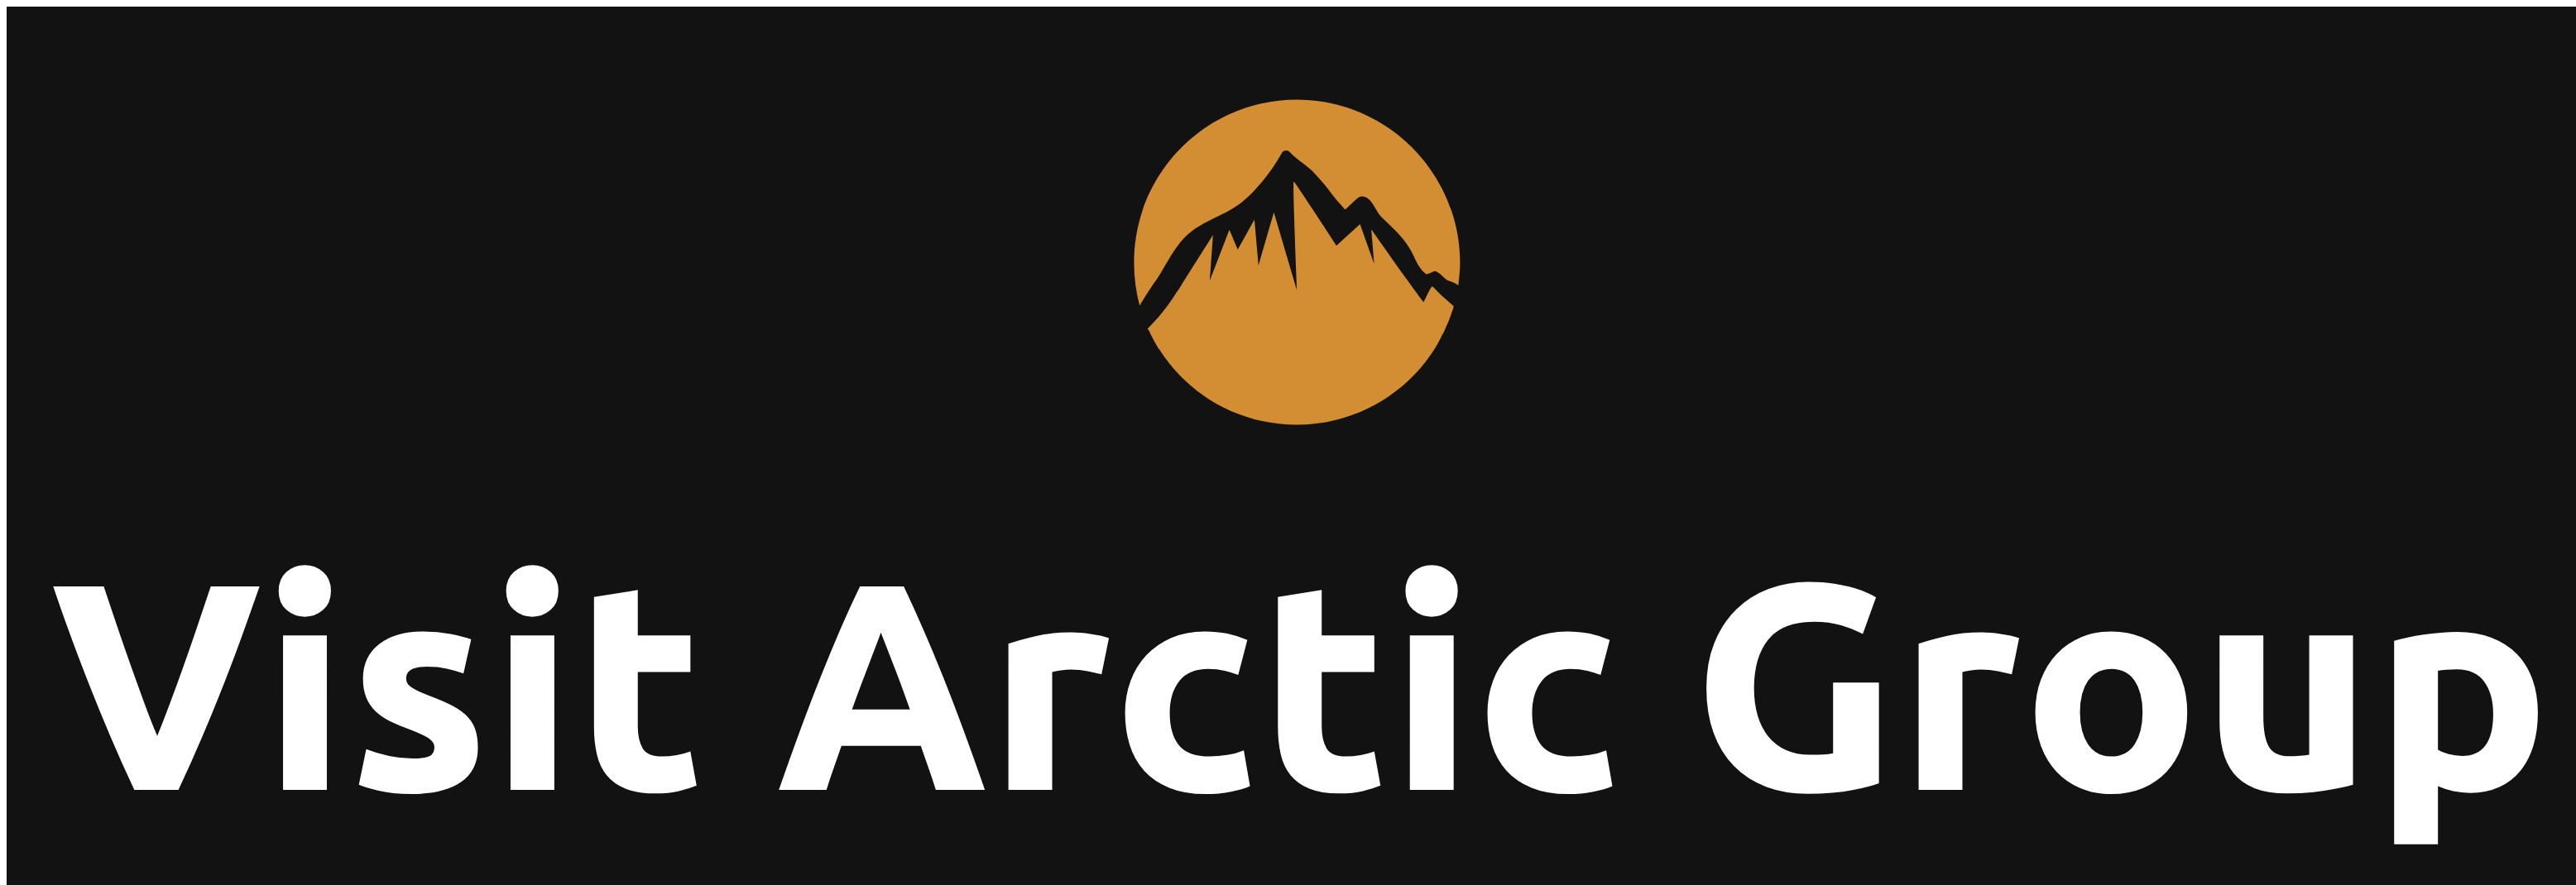 Visit Arctic Group